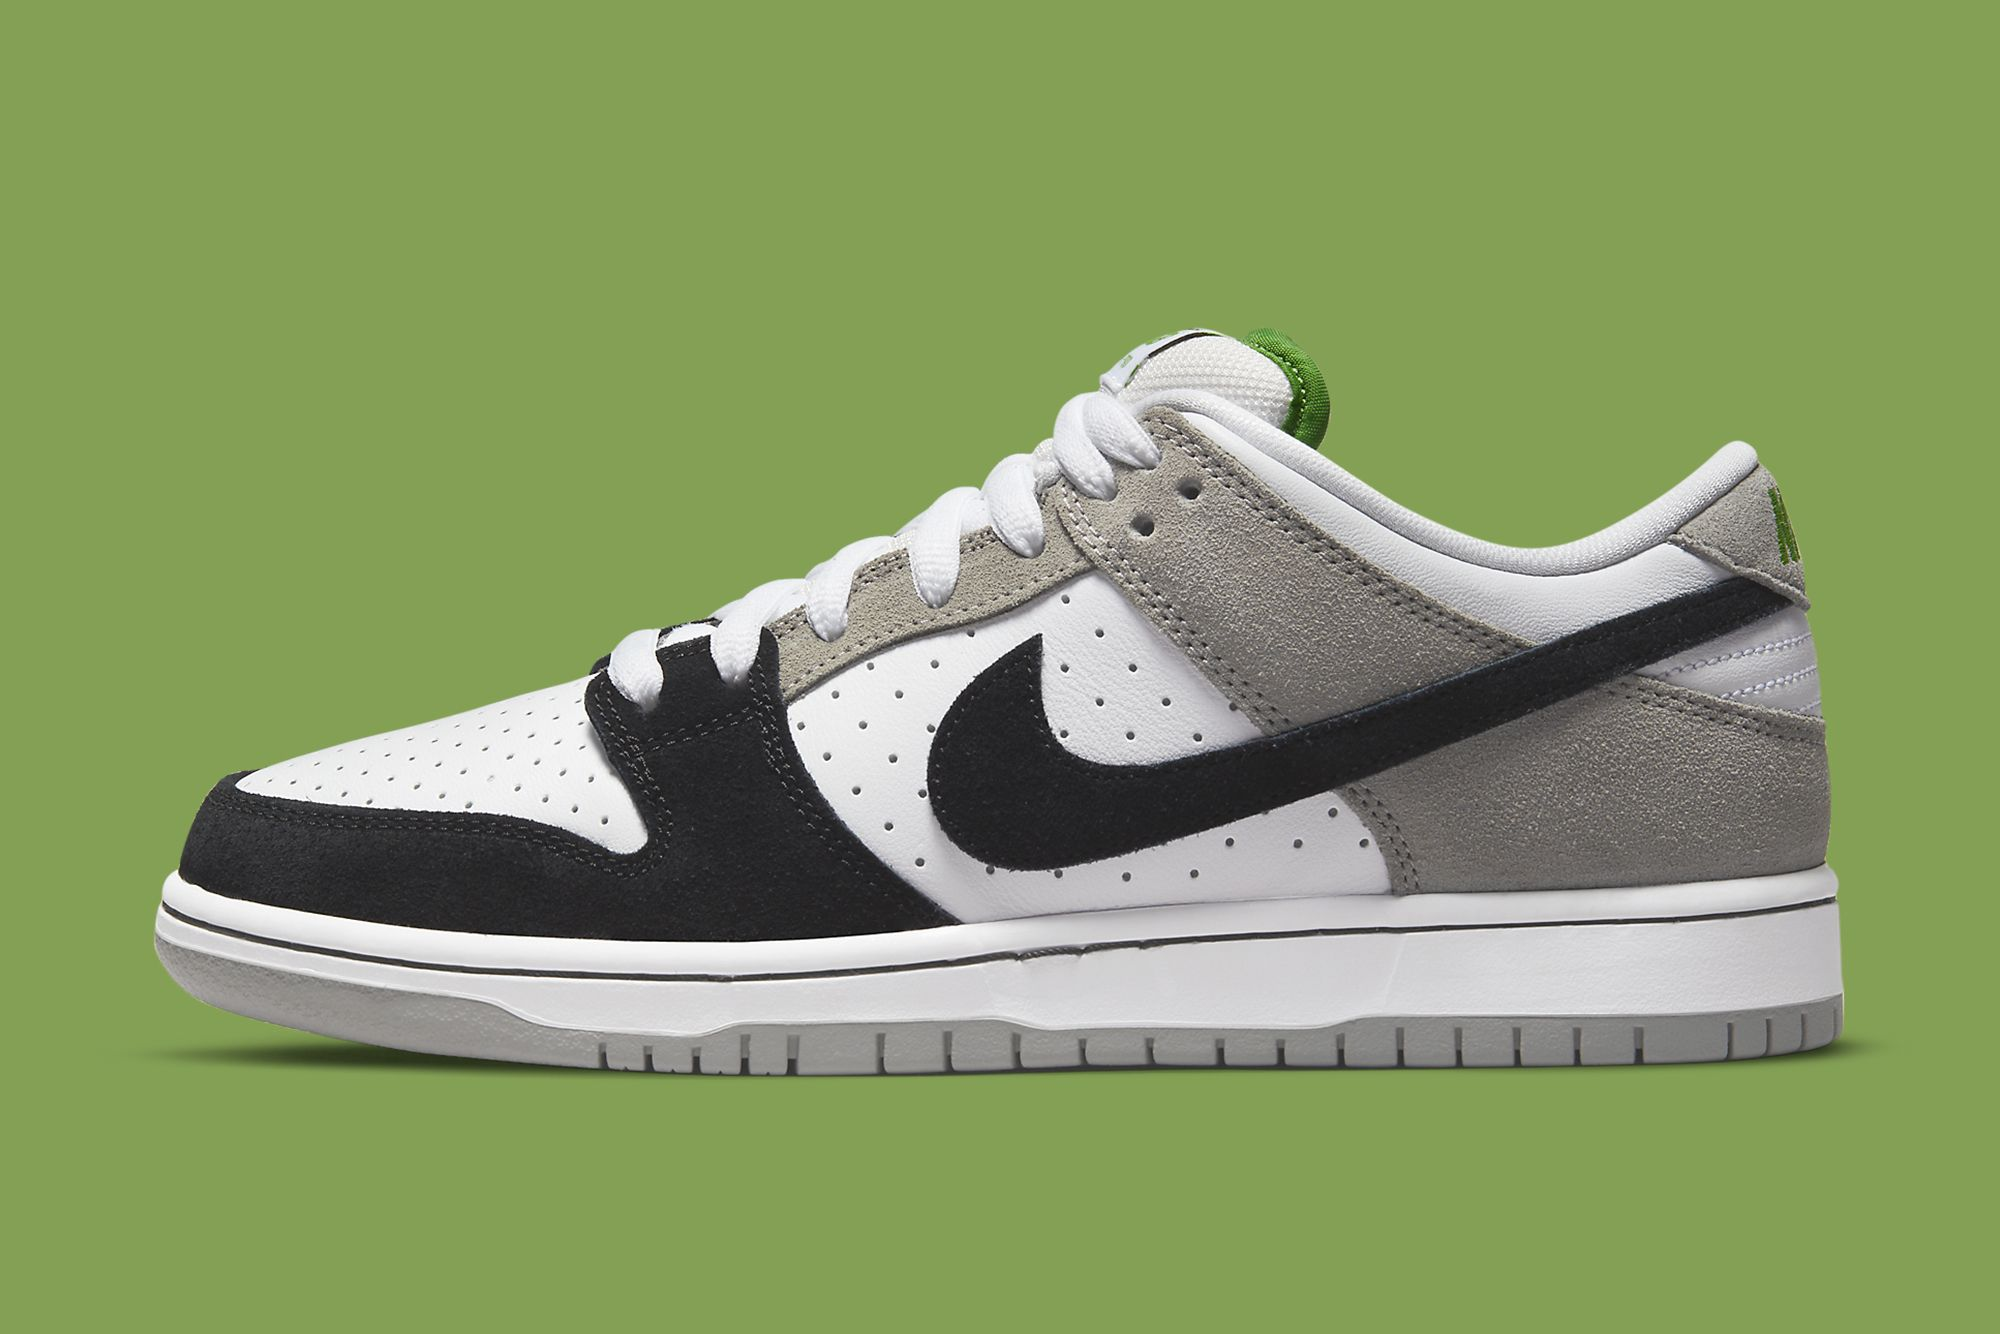 Nike SB Dunk Low 'Chlorophyll' Official Images